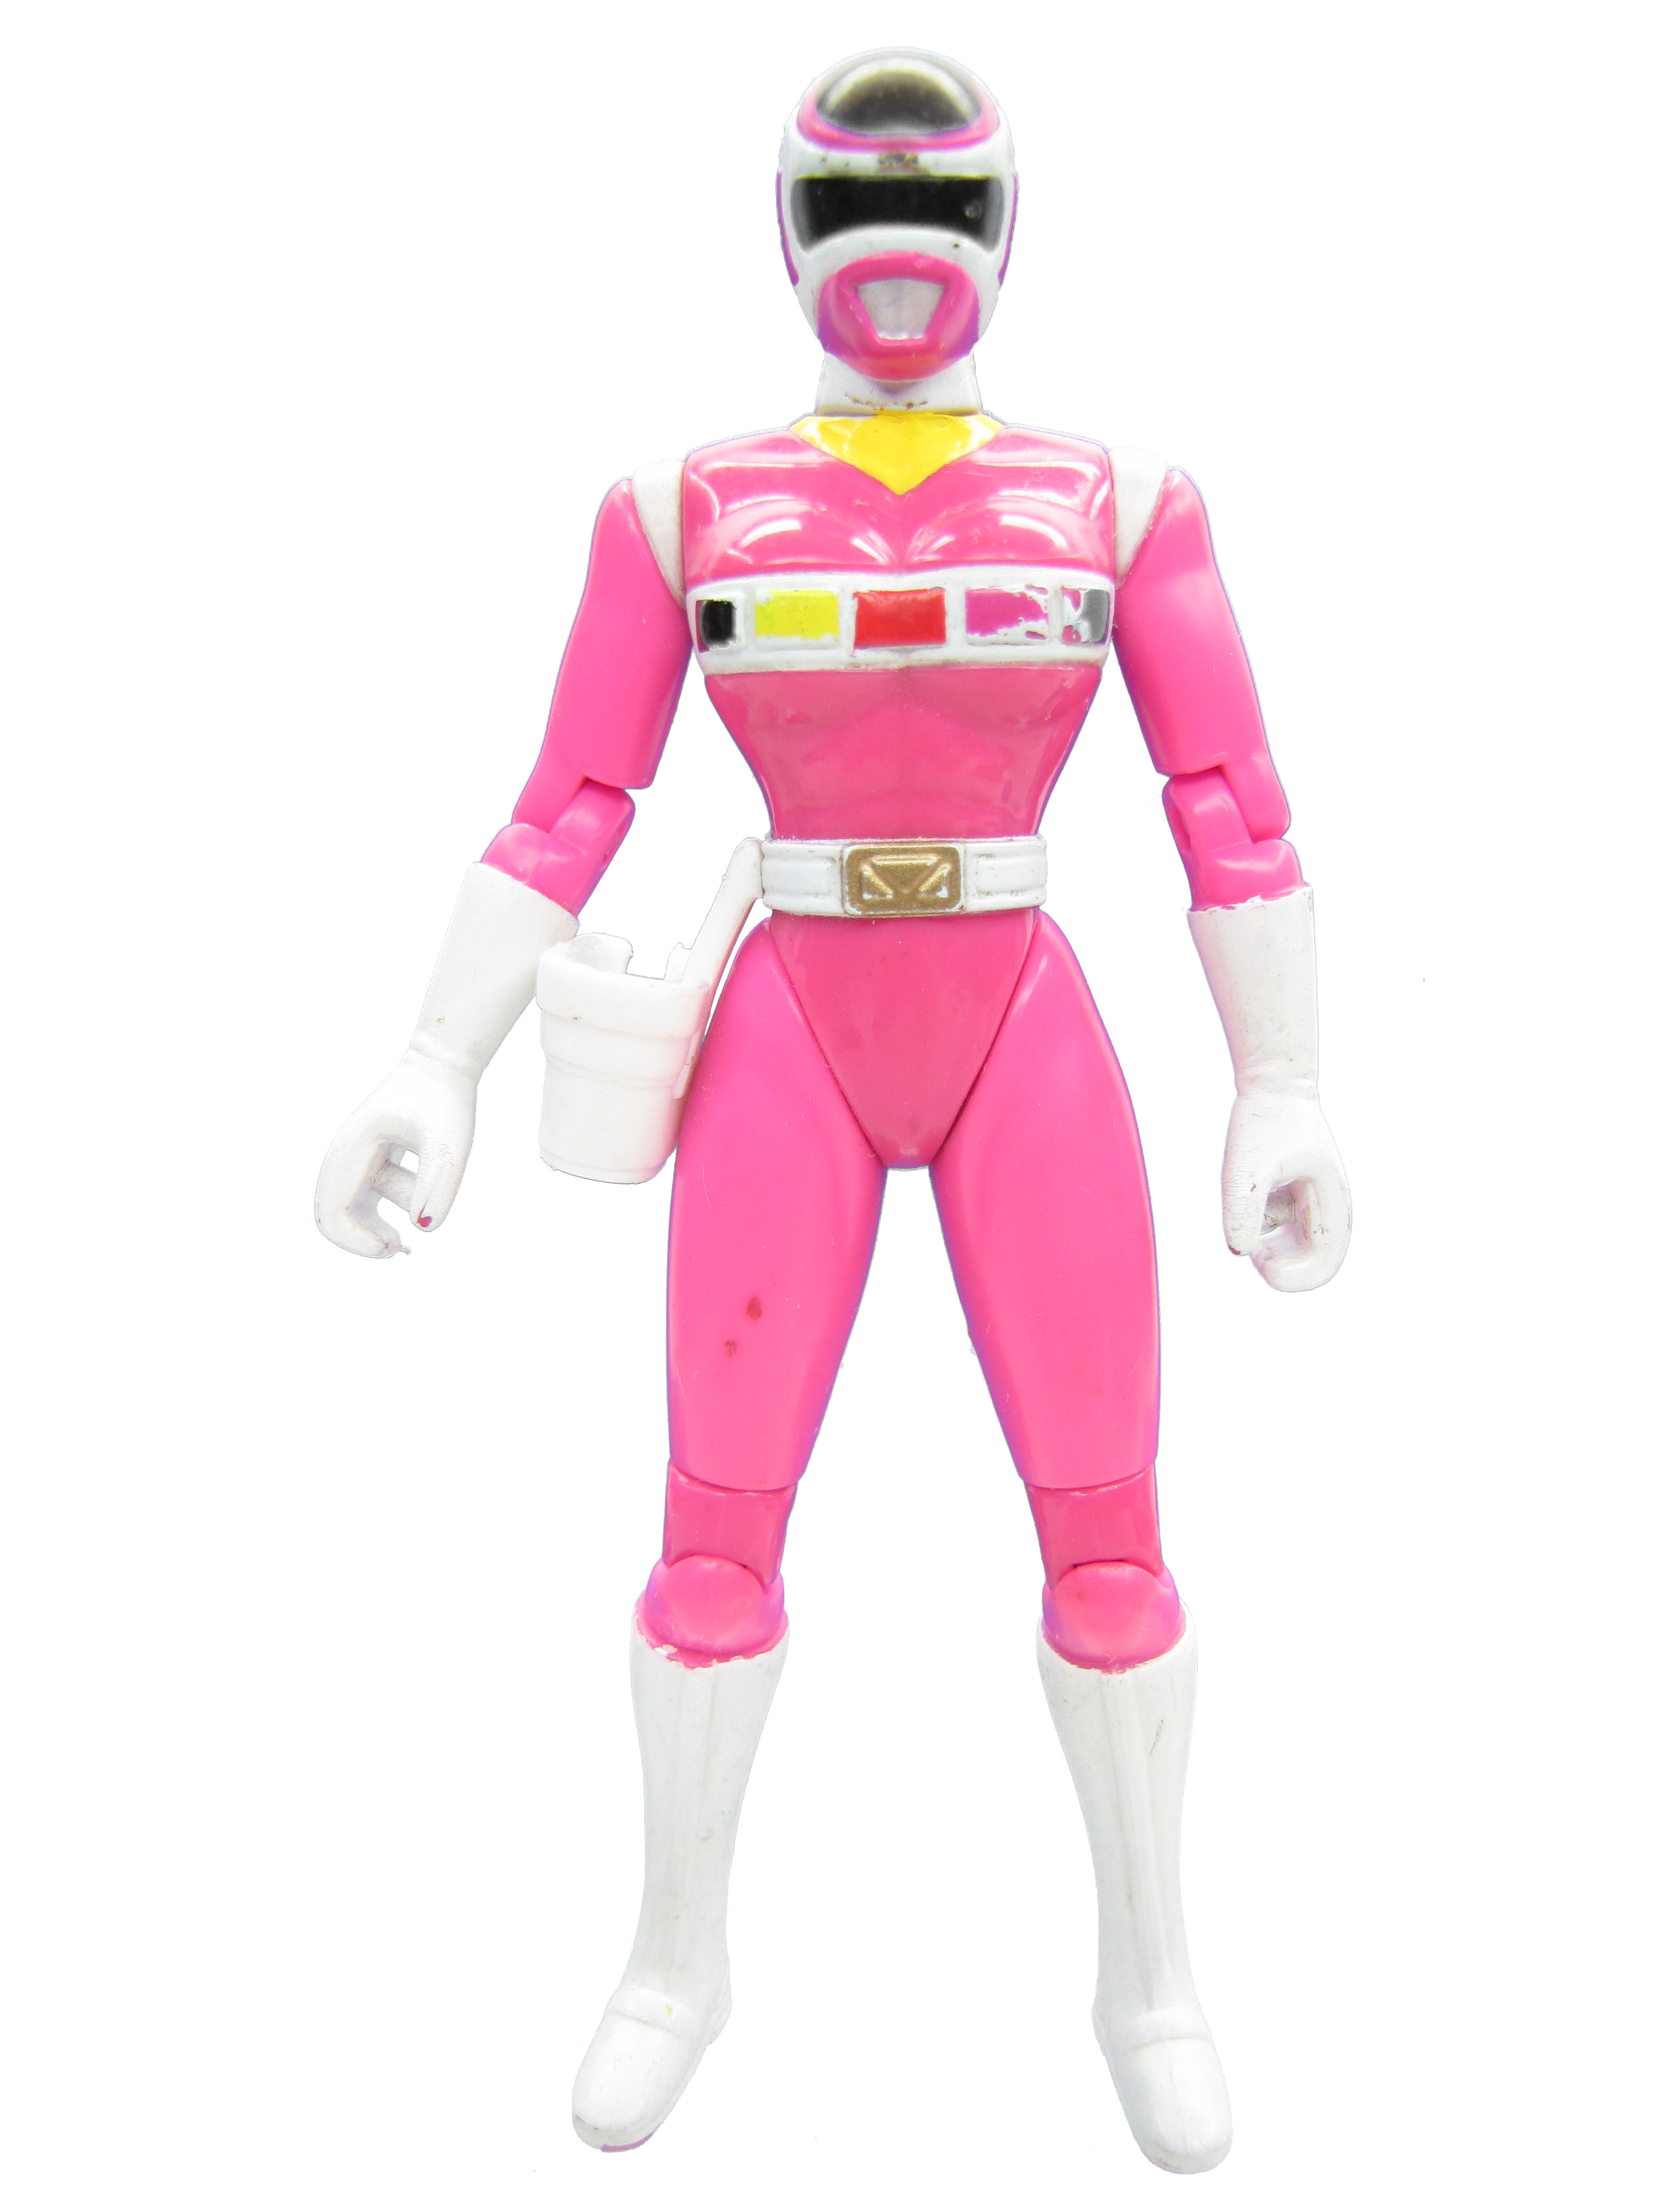 1998 Mighty Morphin Power Rangers Lightstar Pink Power Ranger